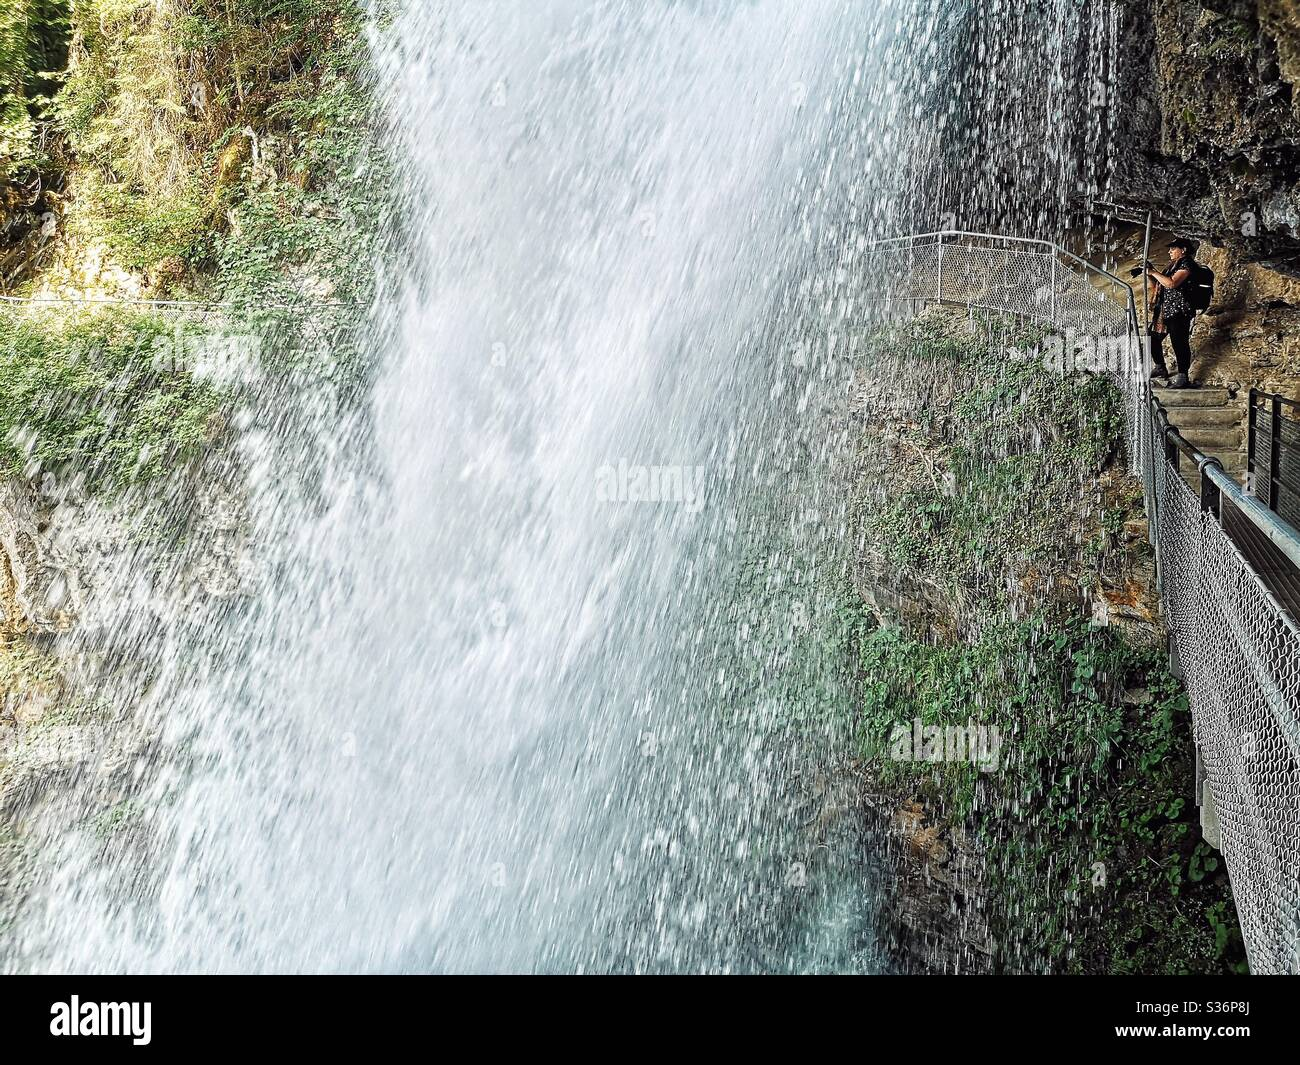 Photographer shooting the rushing waters of the Giessbach falls, Brienz, Switzerland Stock Photo